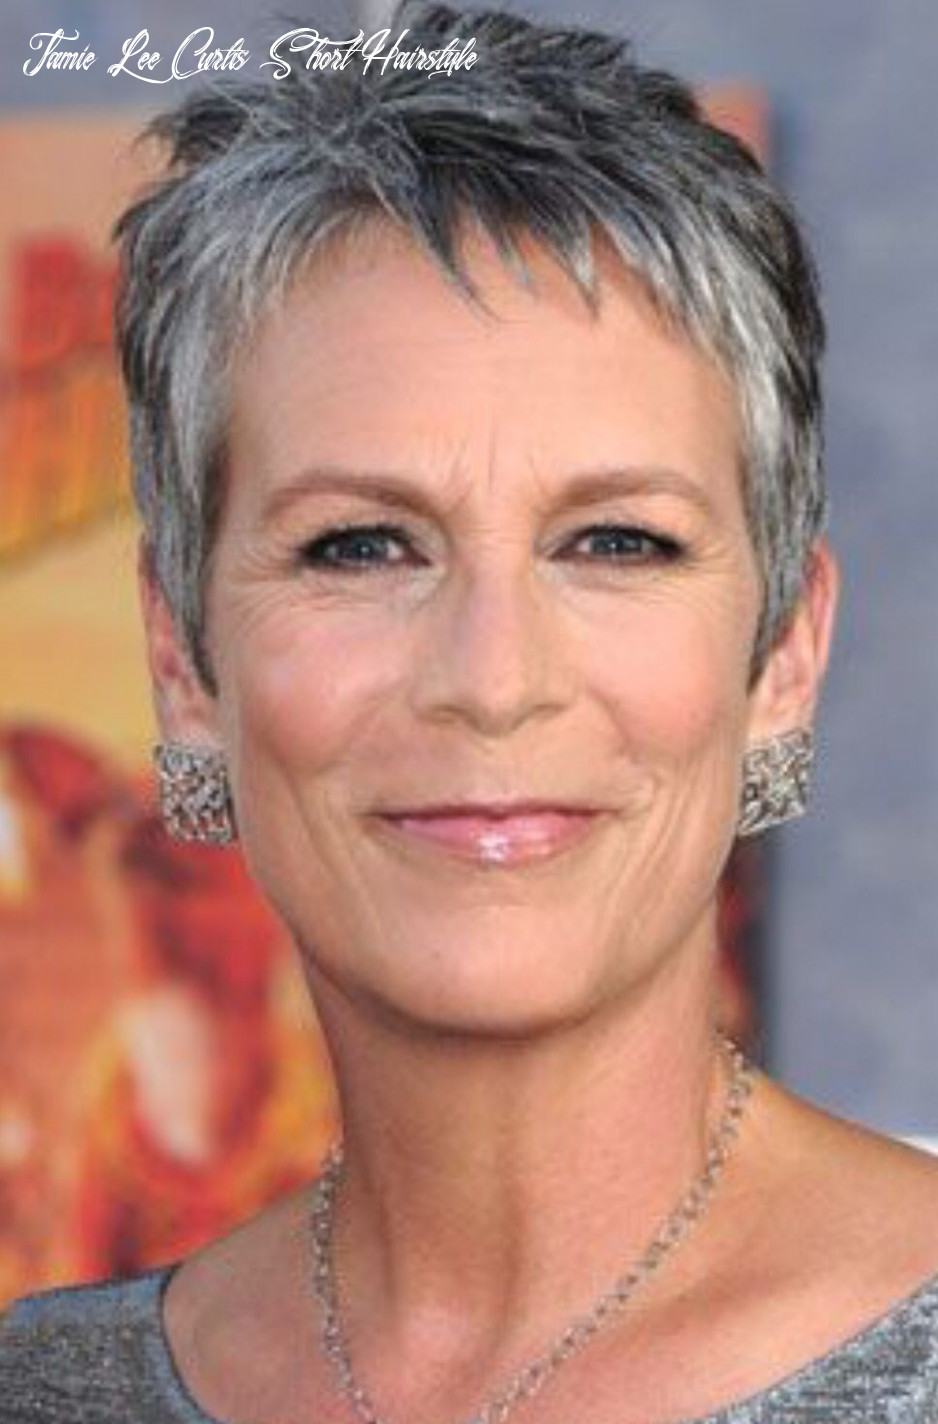 Pin on grey/silver hair jamie lee curtis short hairstyle